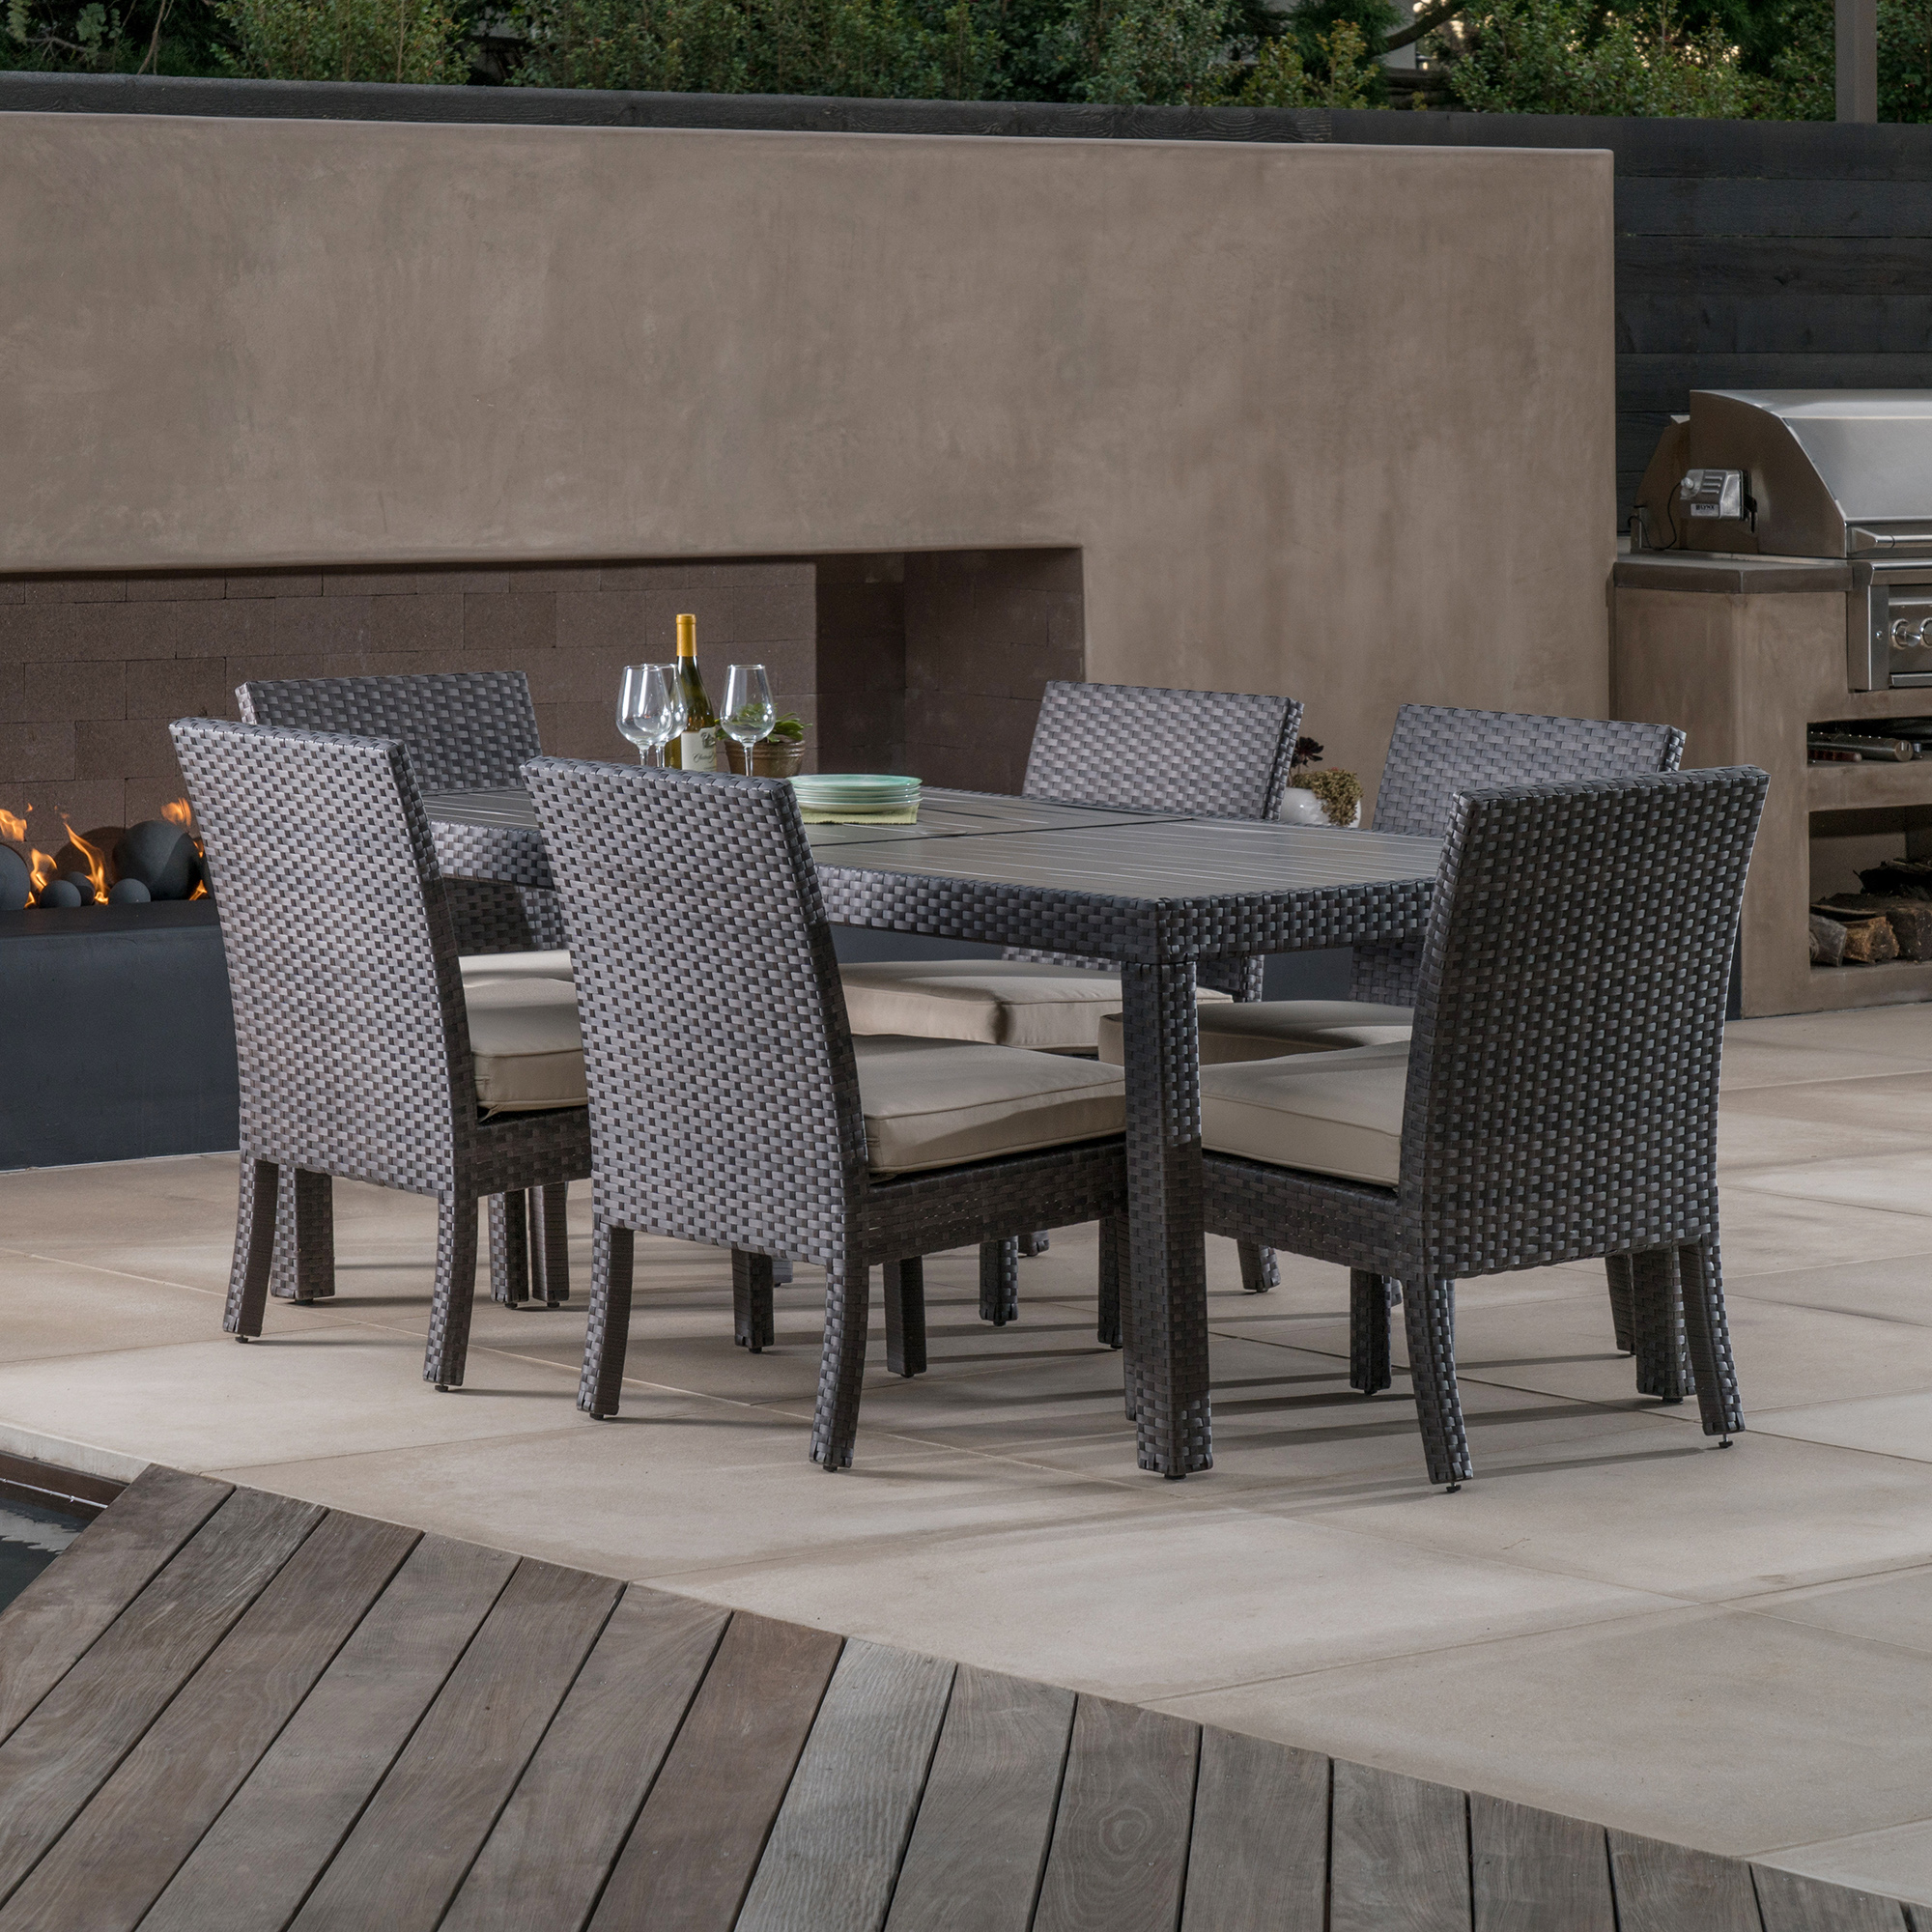 Kingston 7pc dining collection mission hills furniture for Furniture kingston